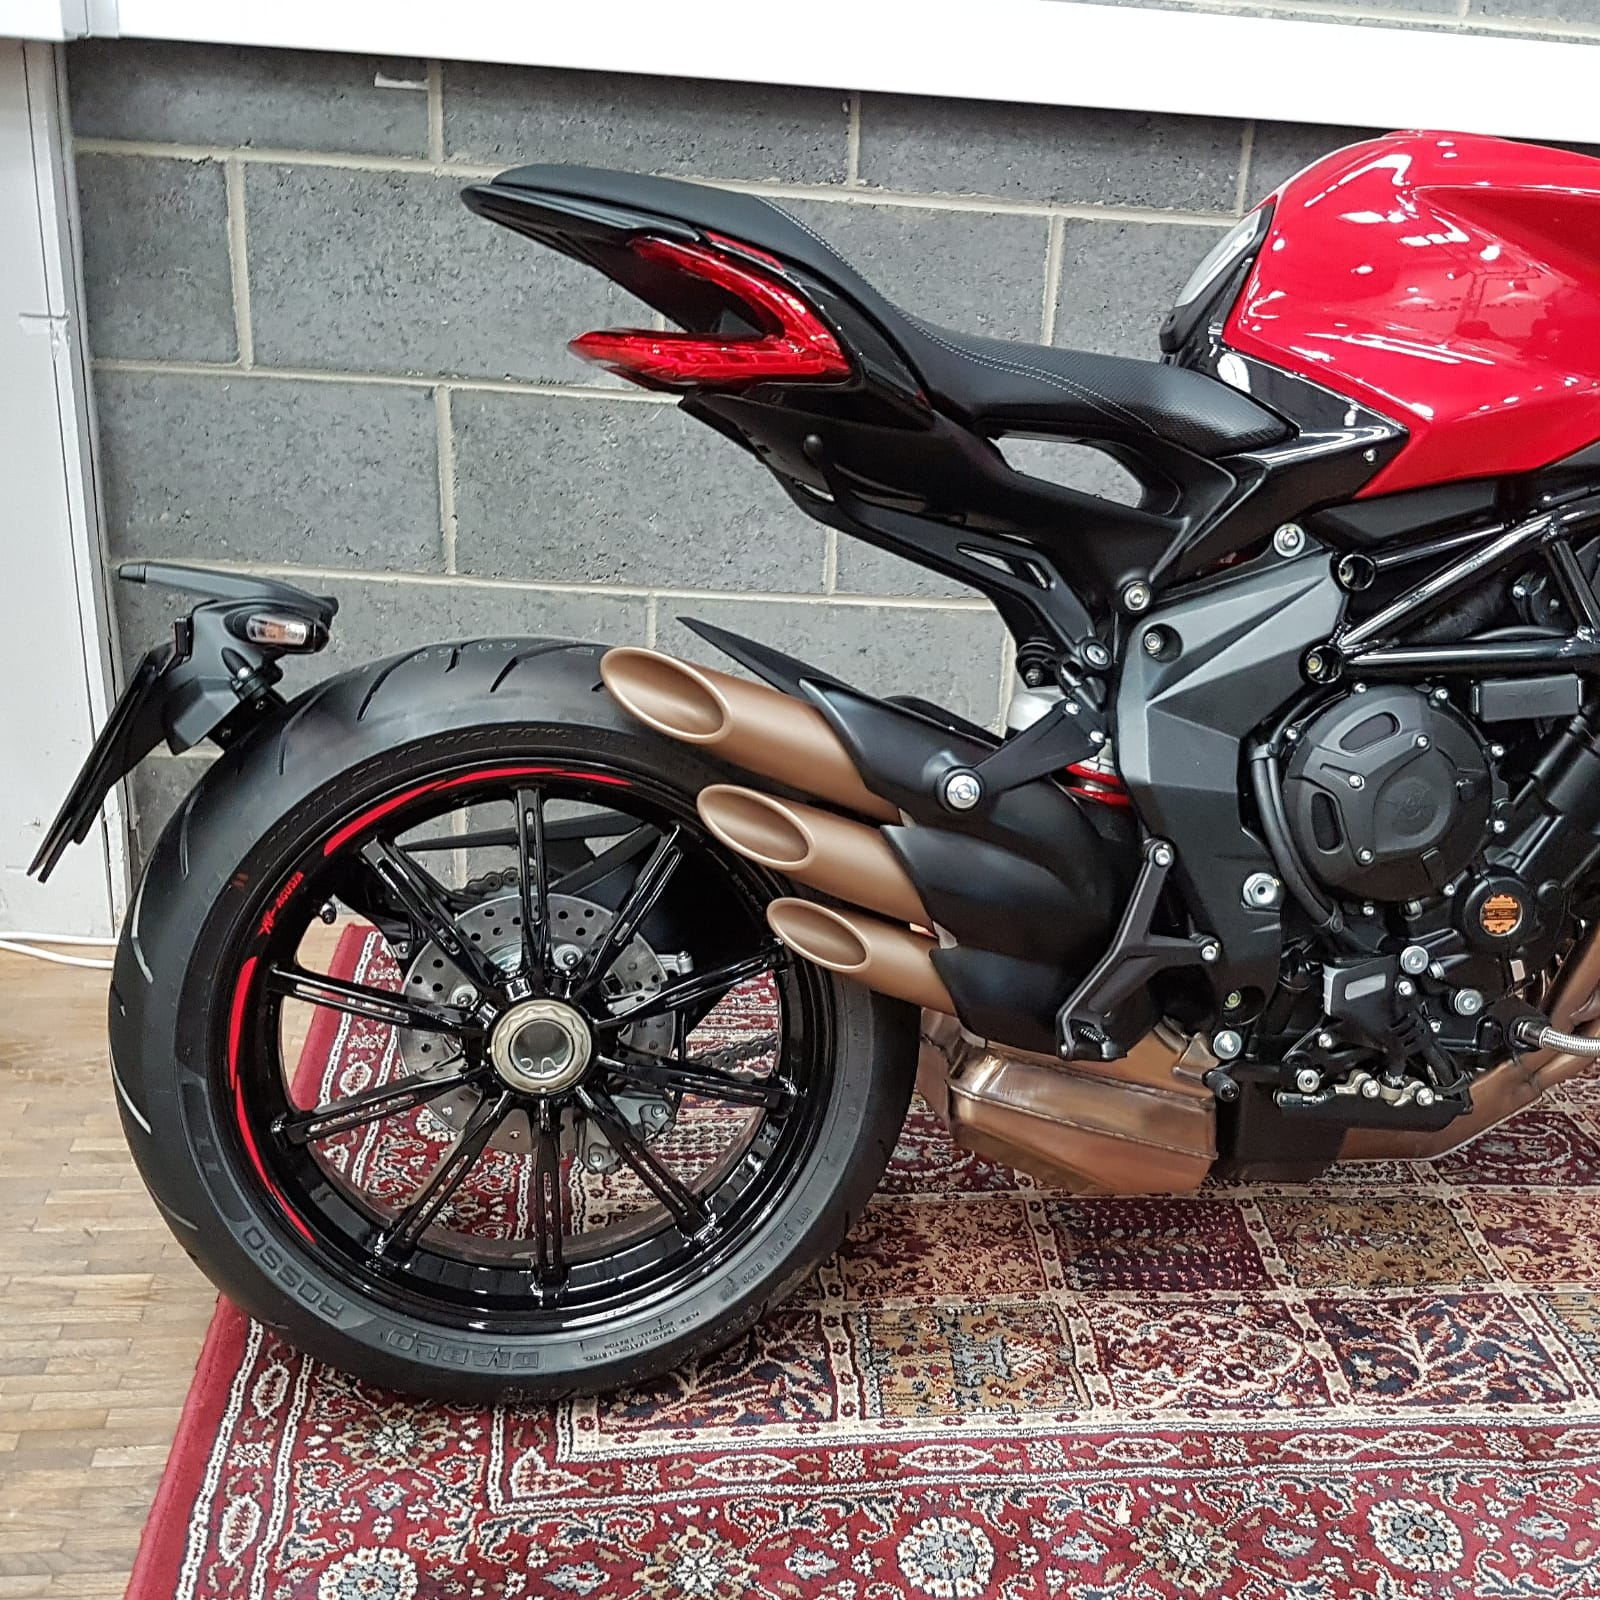 MV Agusta Adds Three Rosso Models at Cheaper Price